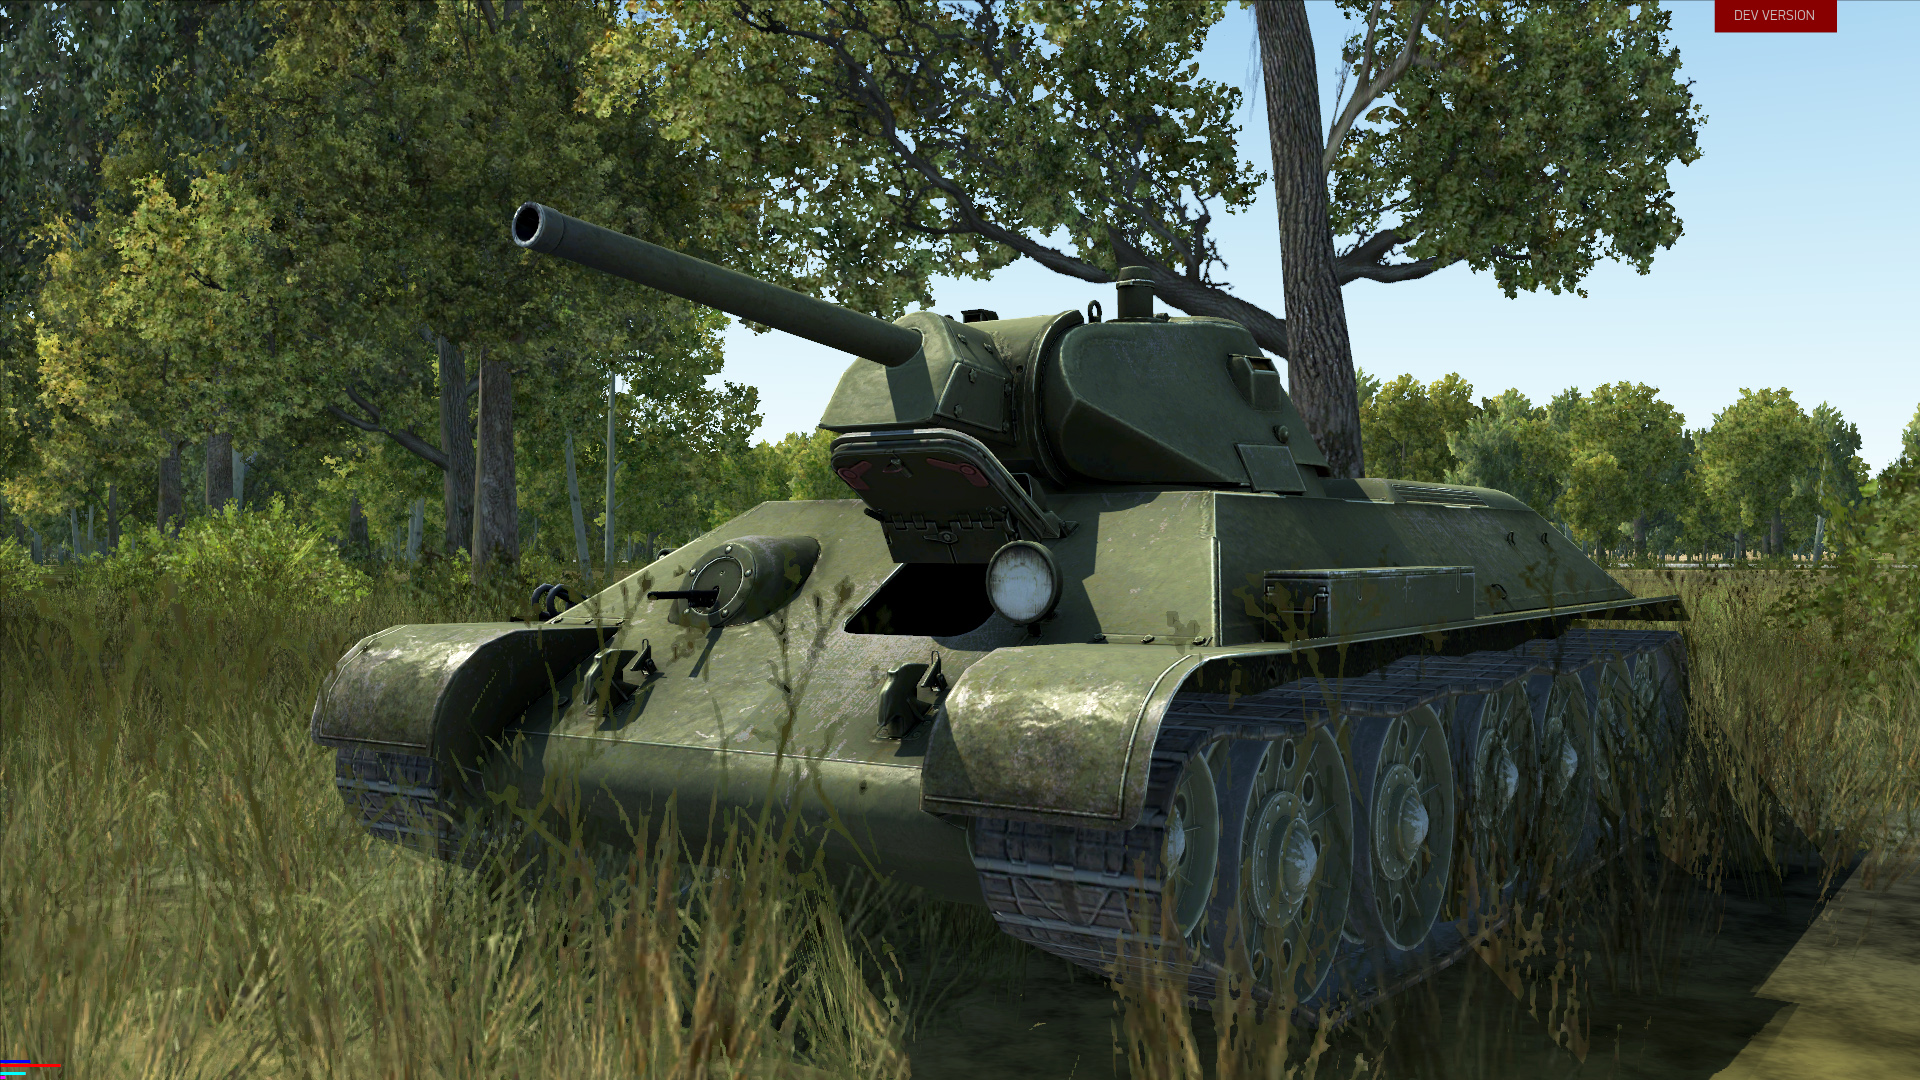 http://forum.il2sturmovik.ru/uploads/monthly_11_2015/post-12-0-49290500-1447337786.jpg